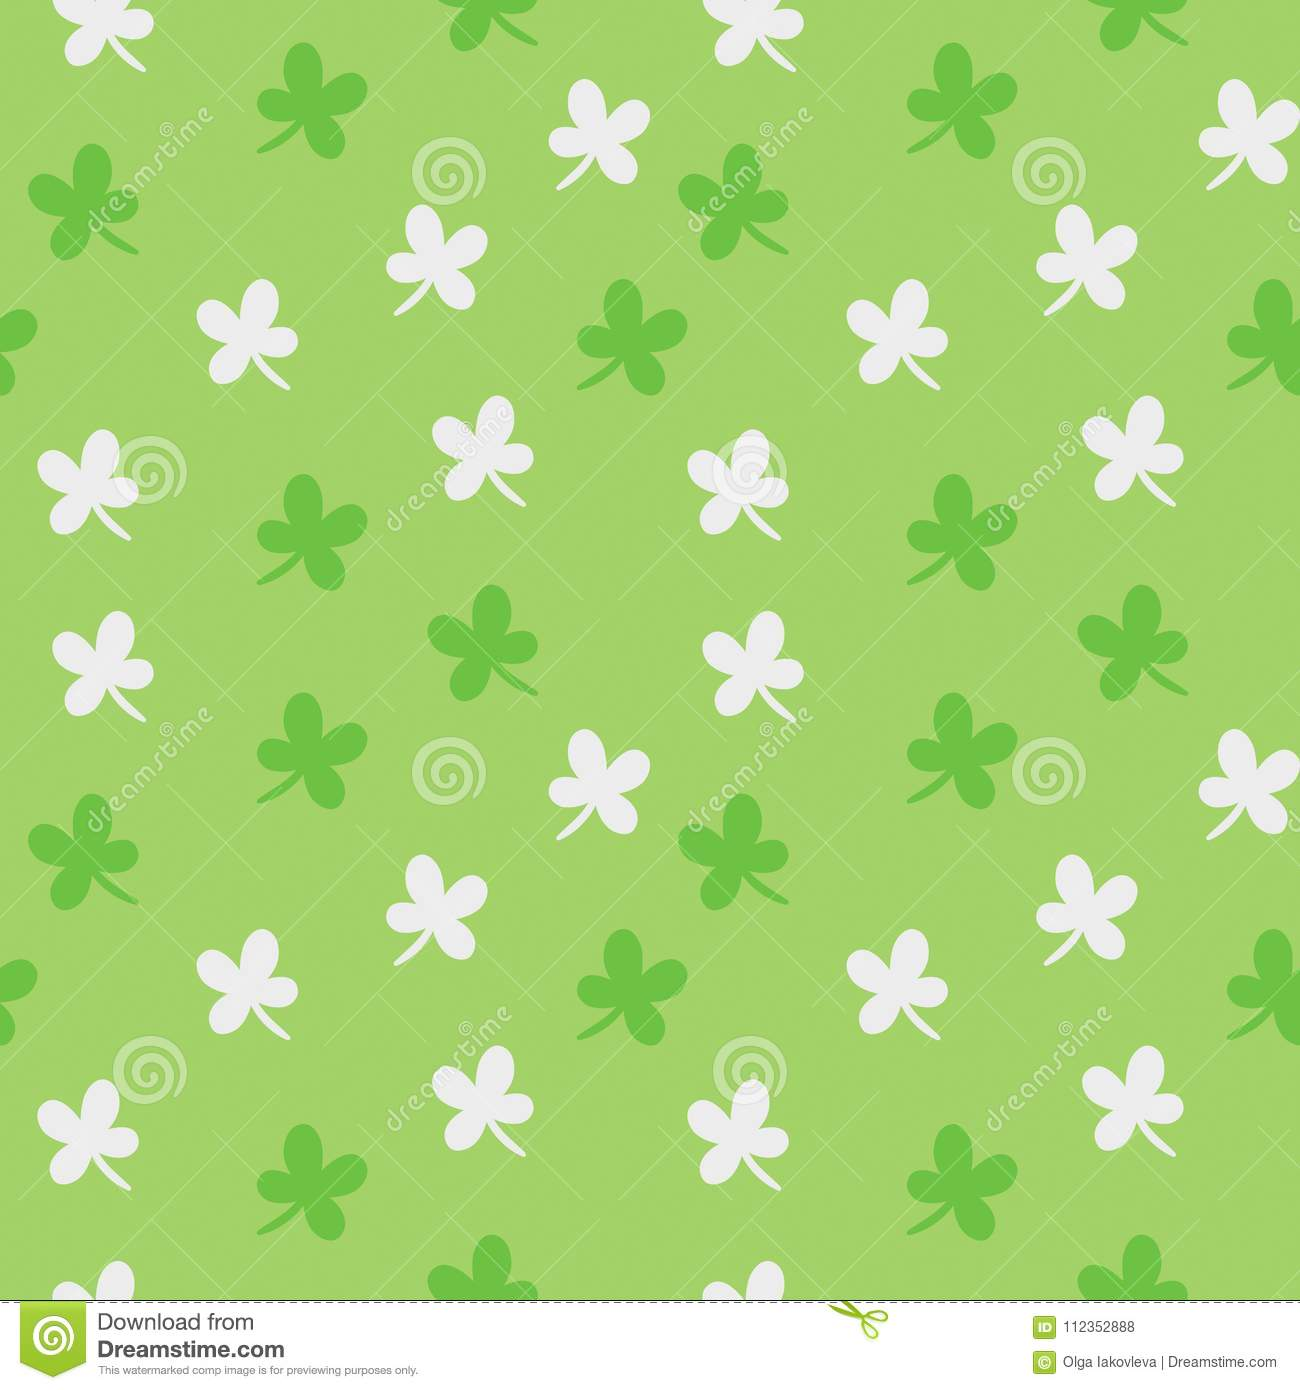 Saint Patrick`s day vector seamless pattern. Green and white clover colorful background